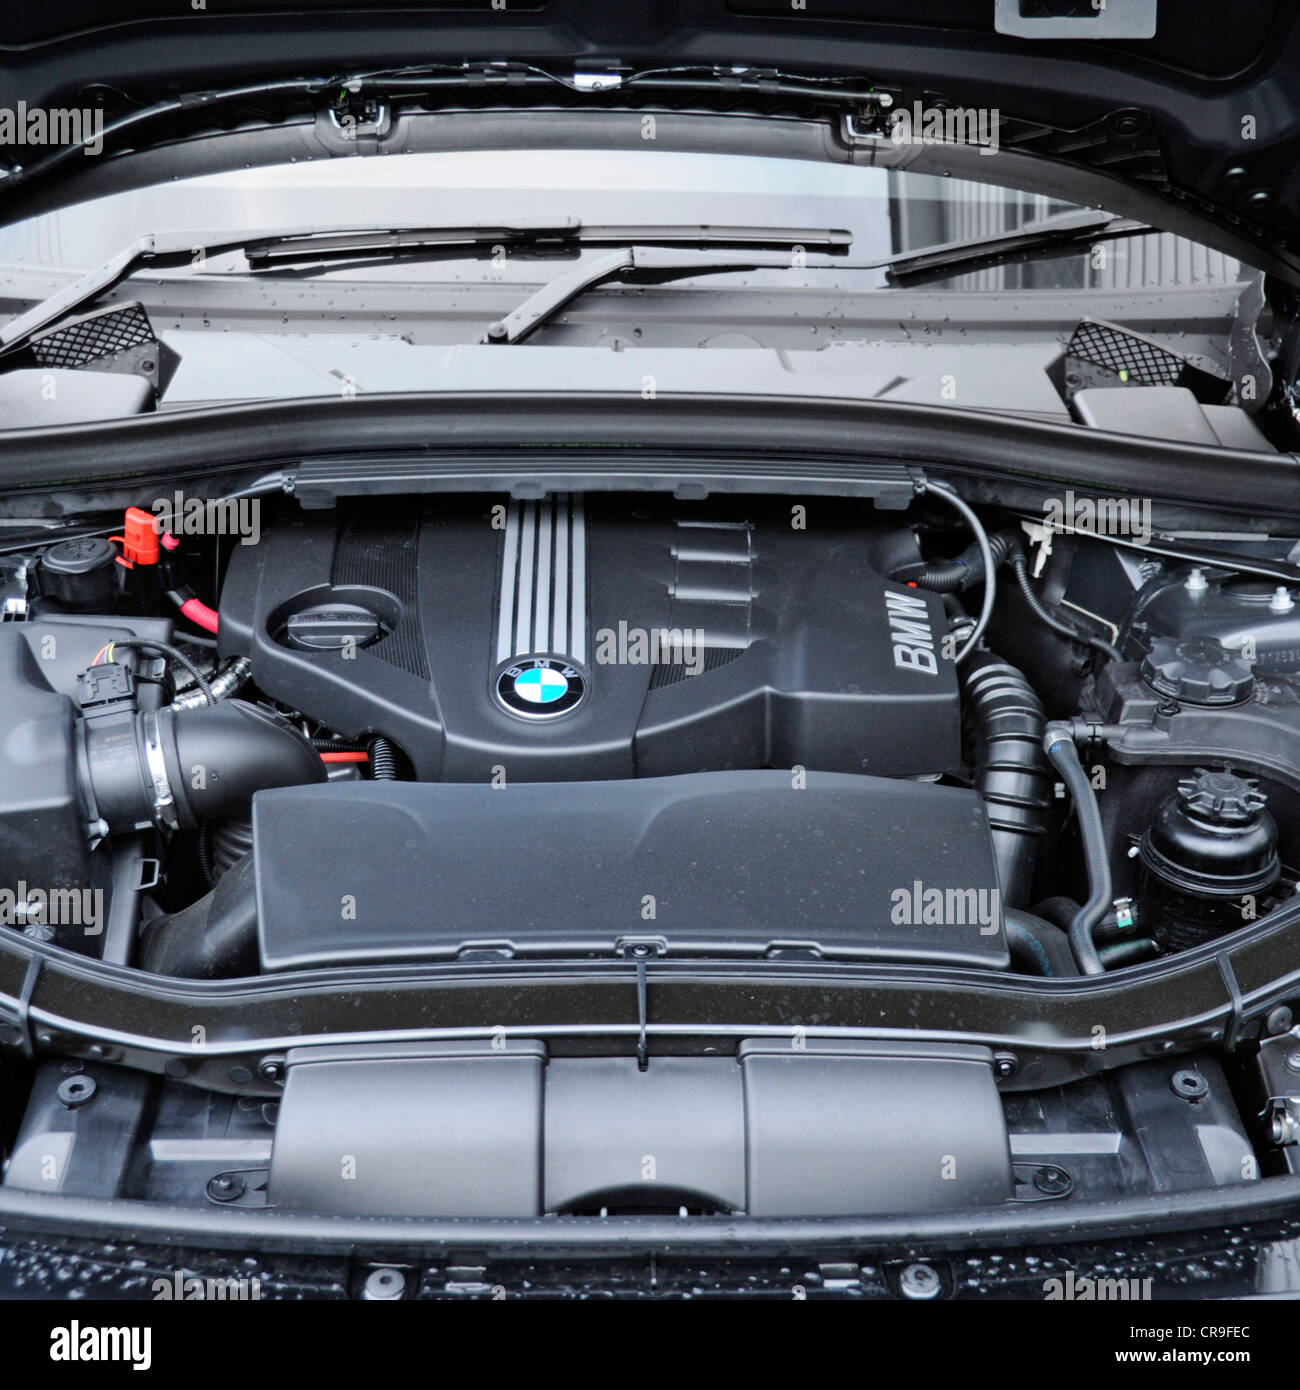 Engine Compartment Stock Photos & Engine Compartment Stock Images ...